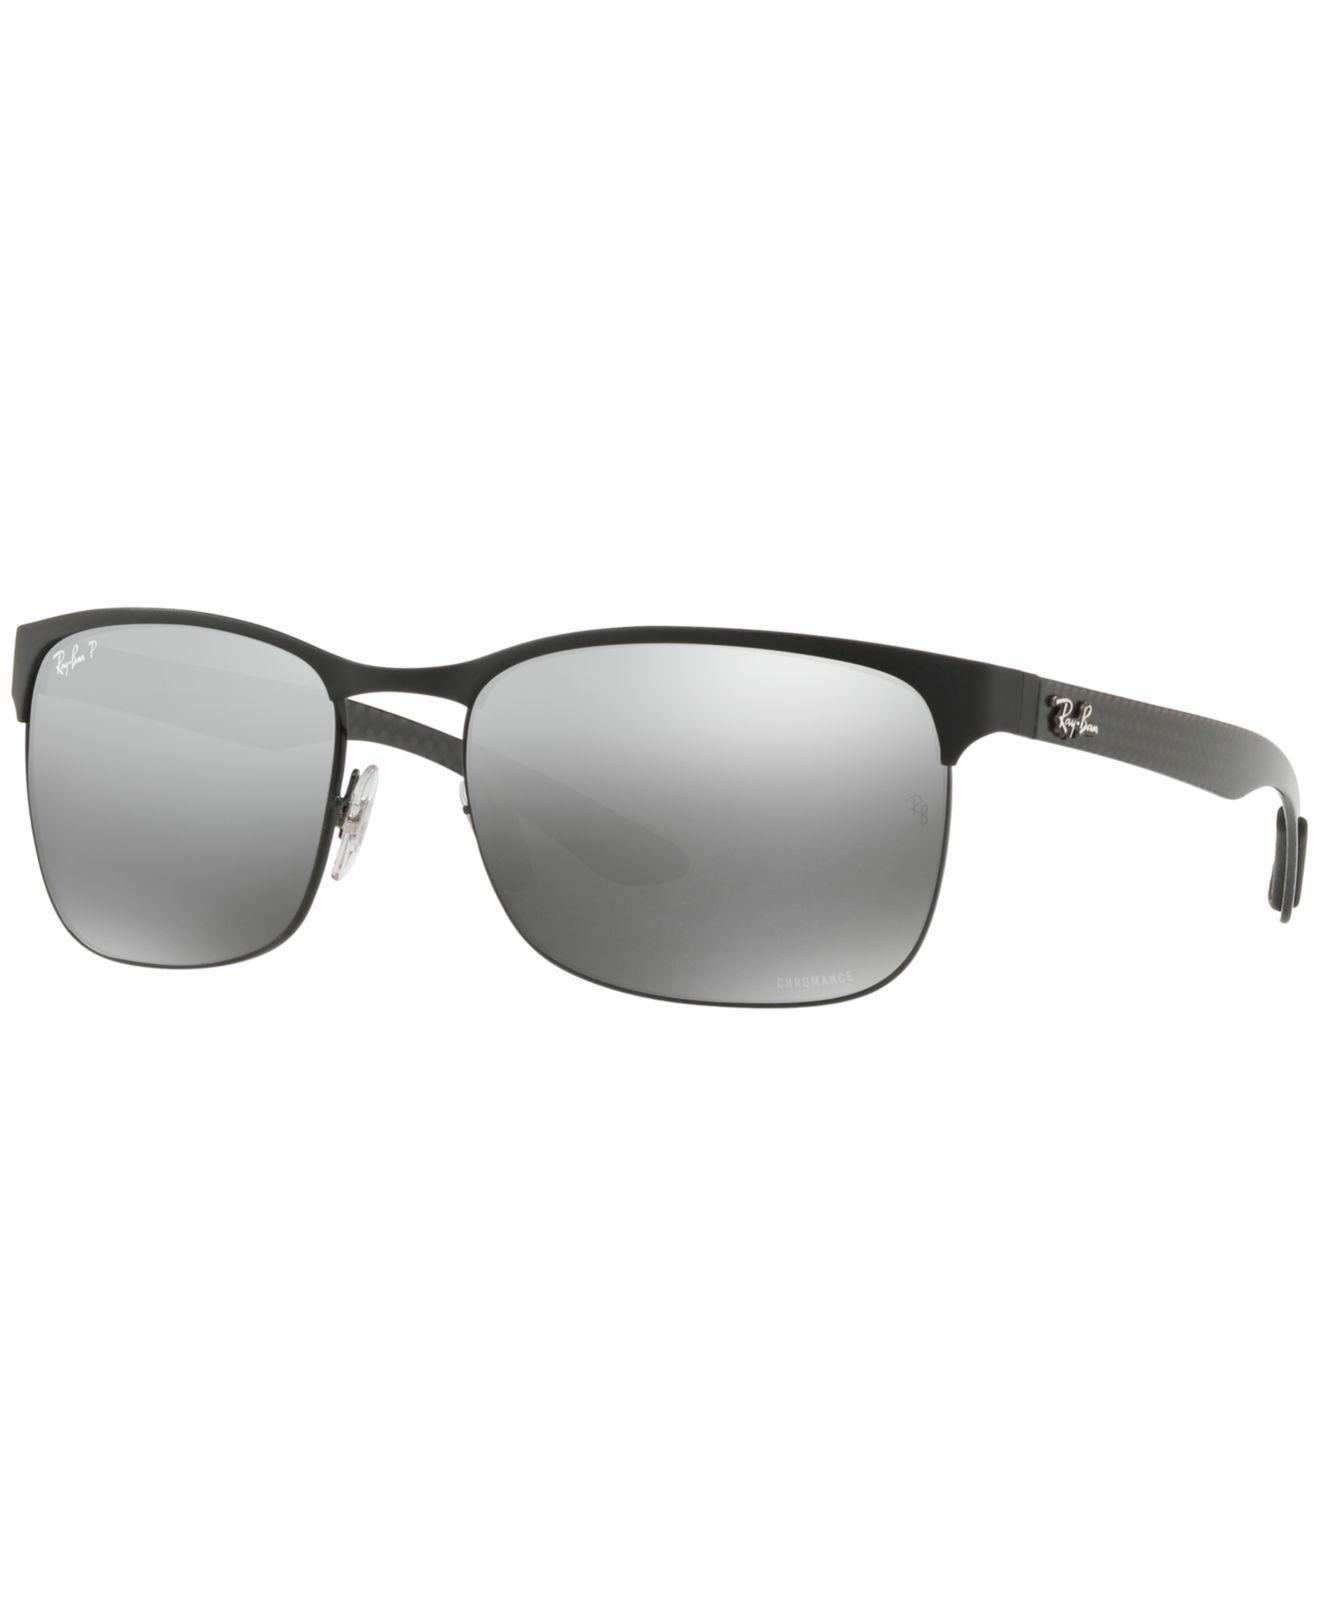 a3c40fc955 Ray-Ban. Men s Gray Polarized Sunglasses